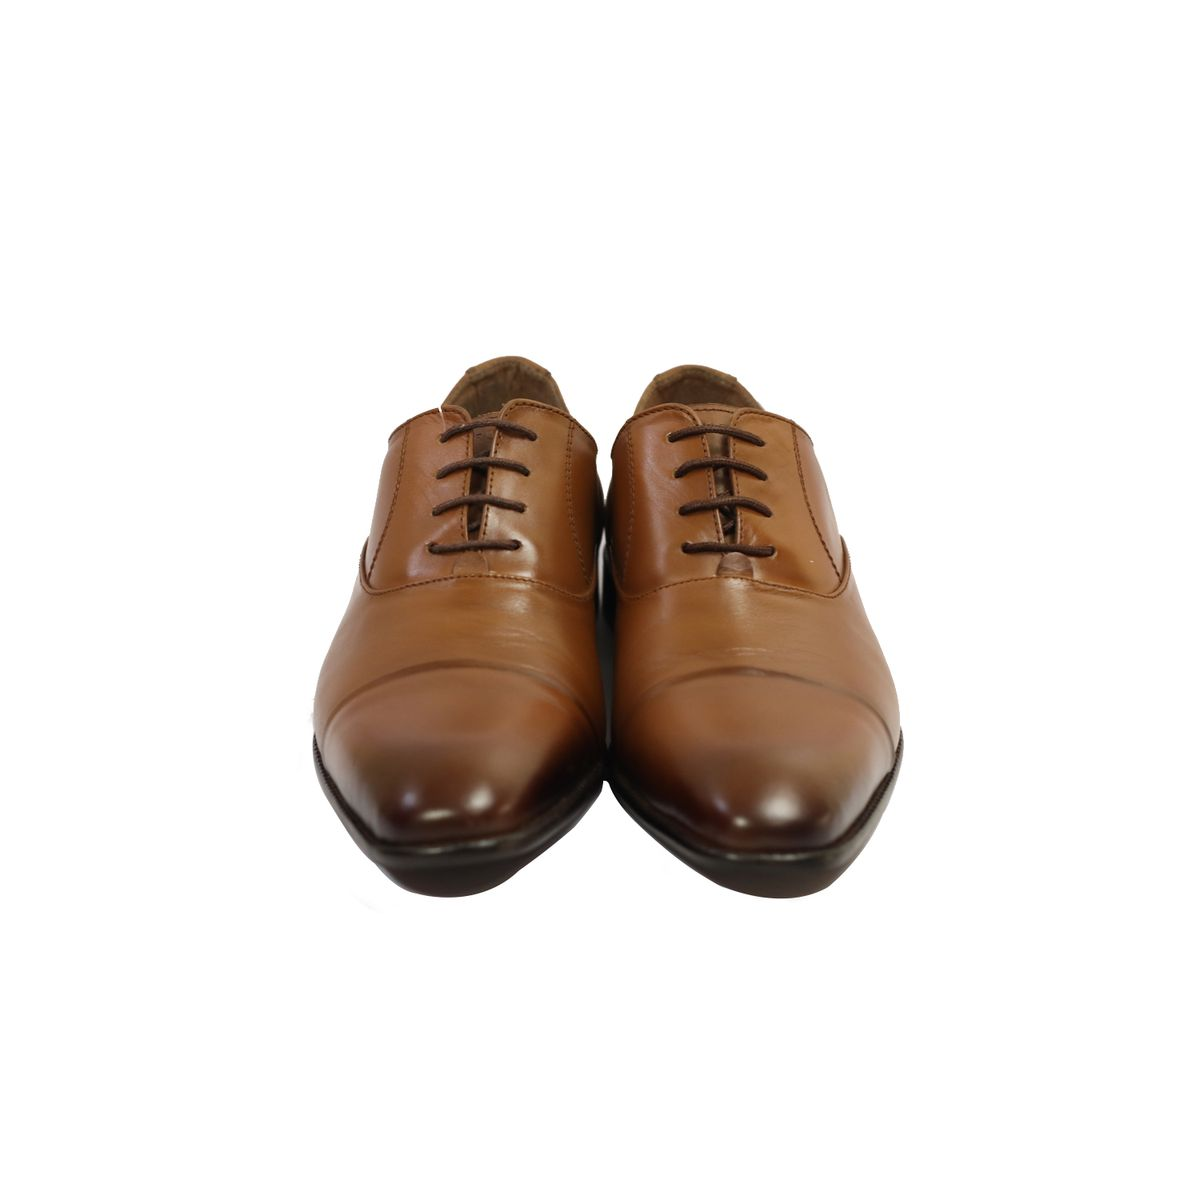 Mister Browns formal shoes for men 09